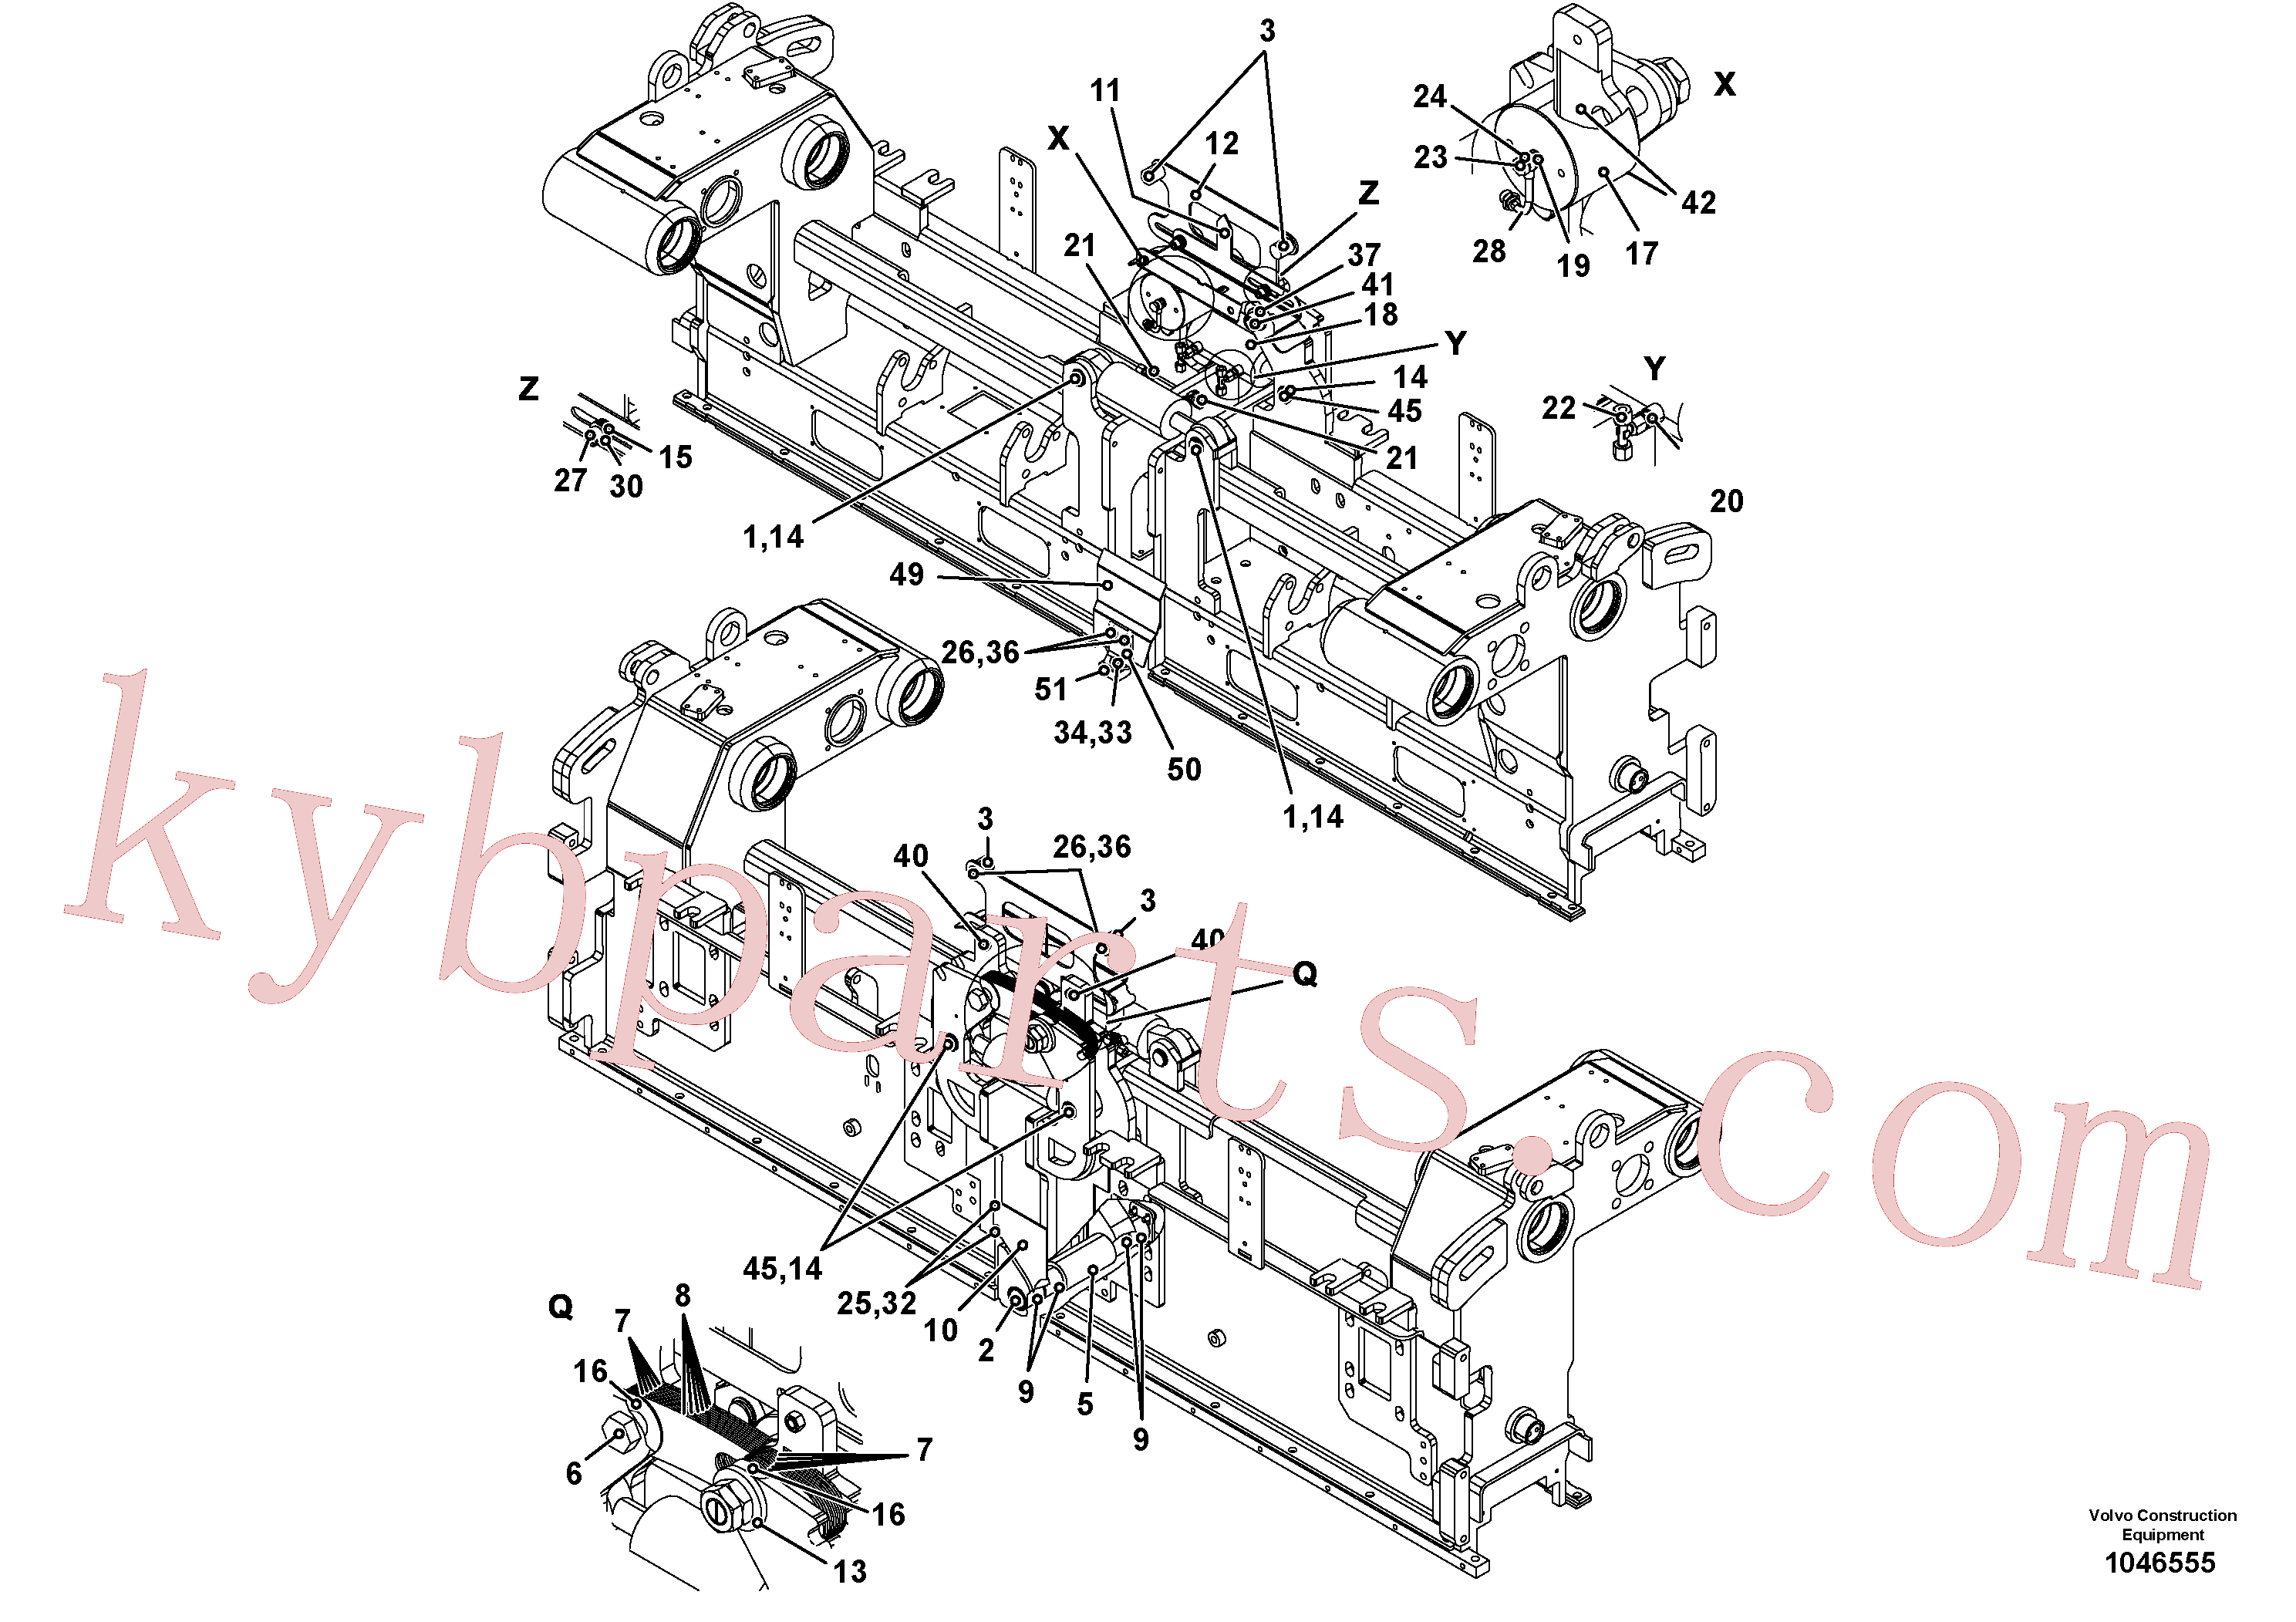 RM96719174 for Volvo Crown control for basic screed, Basic screed and crown control(1046555 assembly)